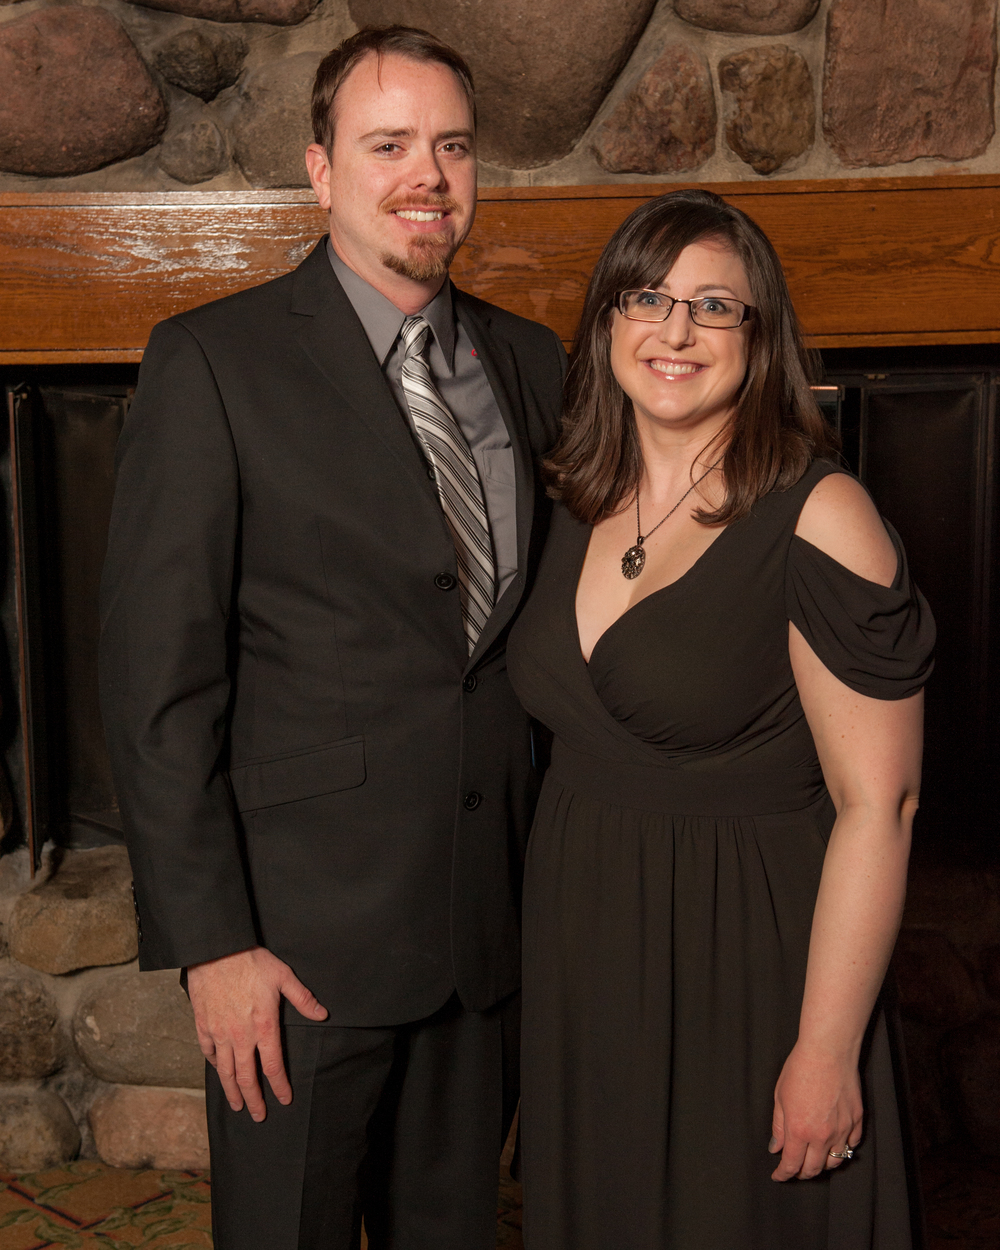 Johnson Wedding (189 of 260).jpg